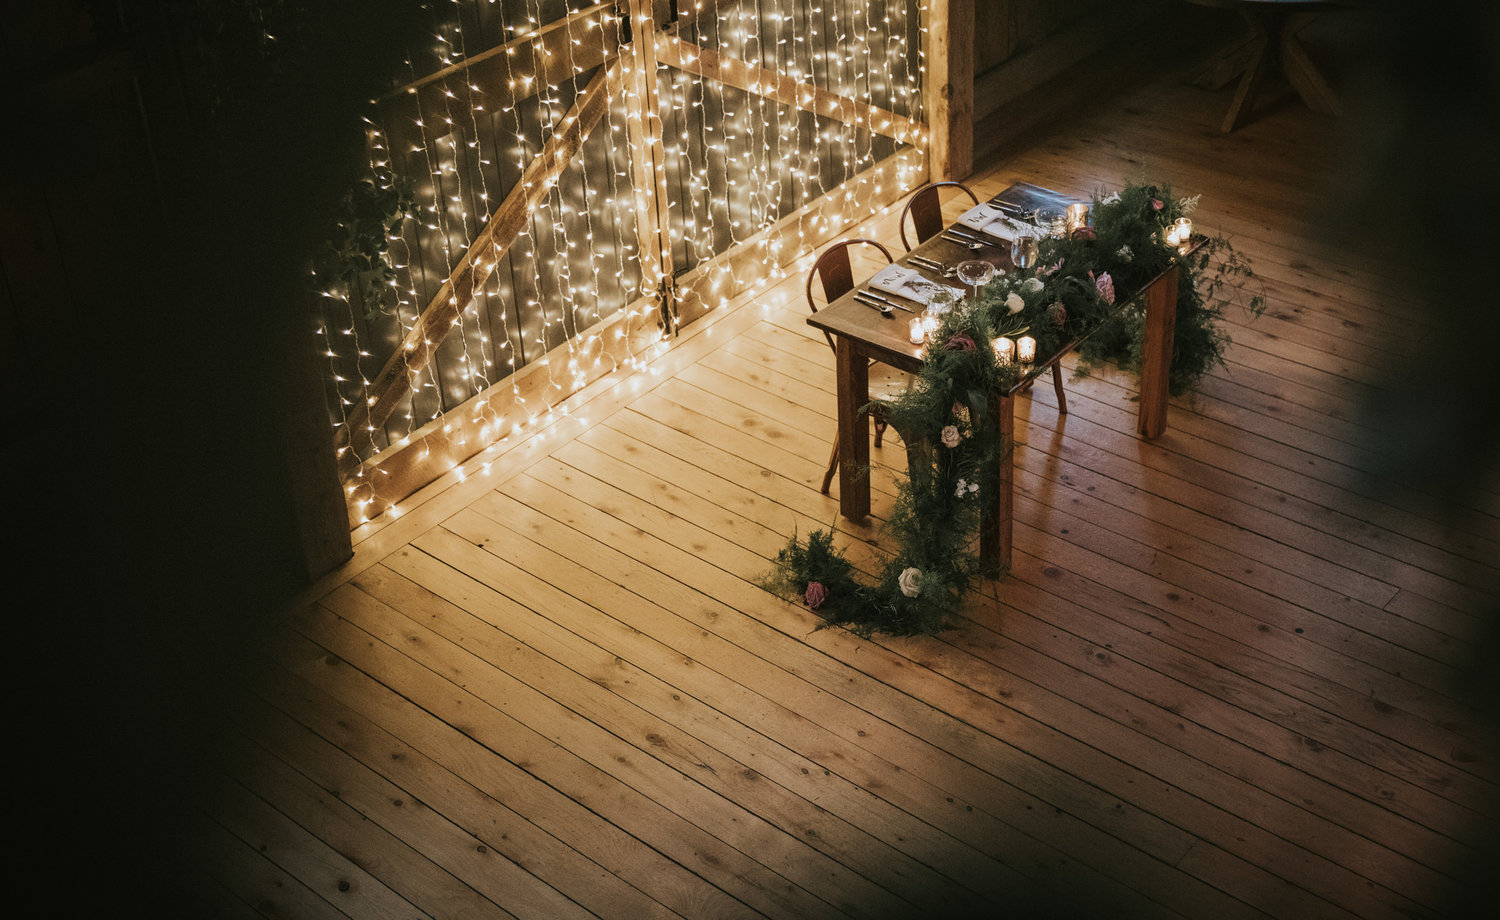 Flanagan farm maine wedding barn sweetheart table lights greens garland.jpg